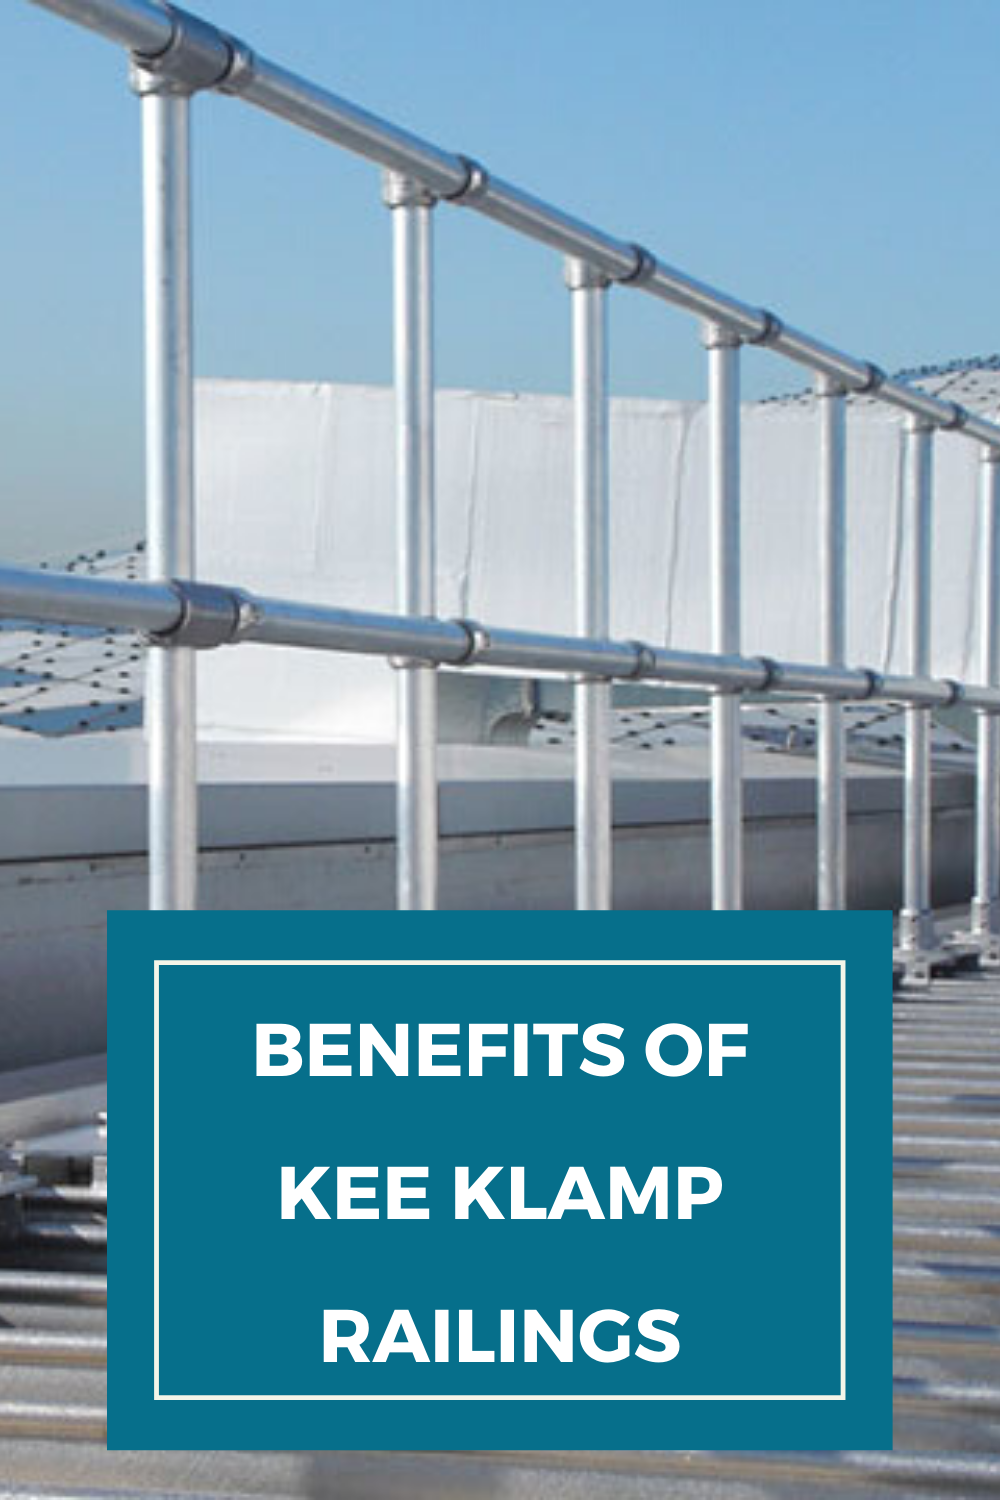 The Advantages Of Kee Klamp Railings In 2020 Roof Edge House Interior Fall Prevention